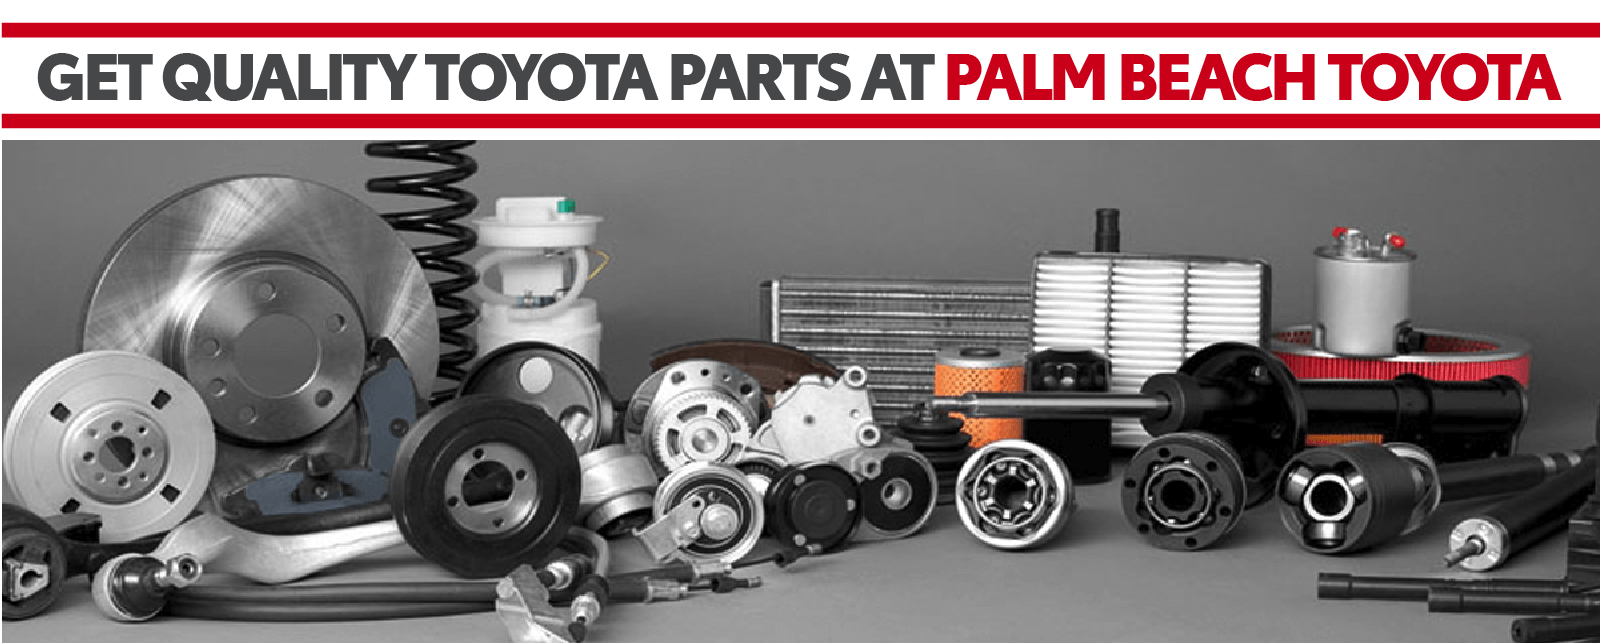 Complimentary services for EVERY service visit! Only at Palm Beach Toyota!